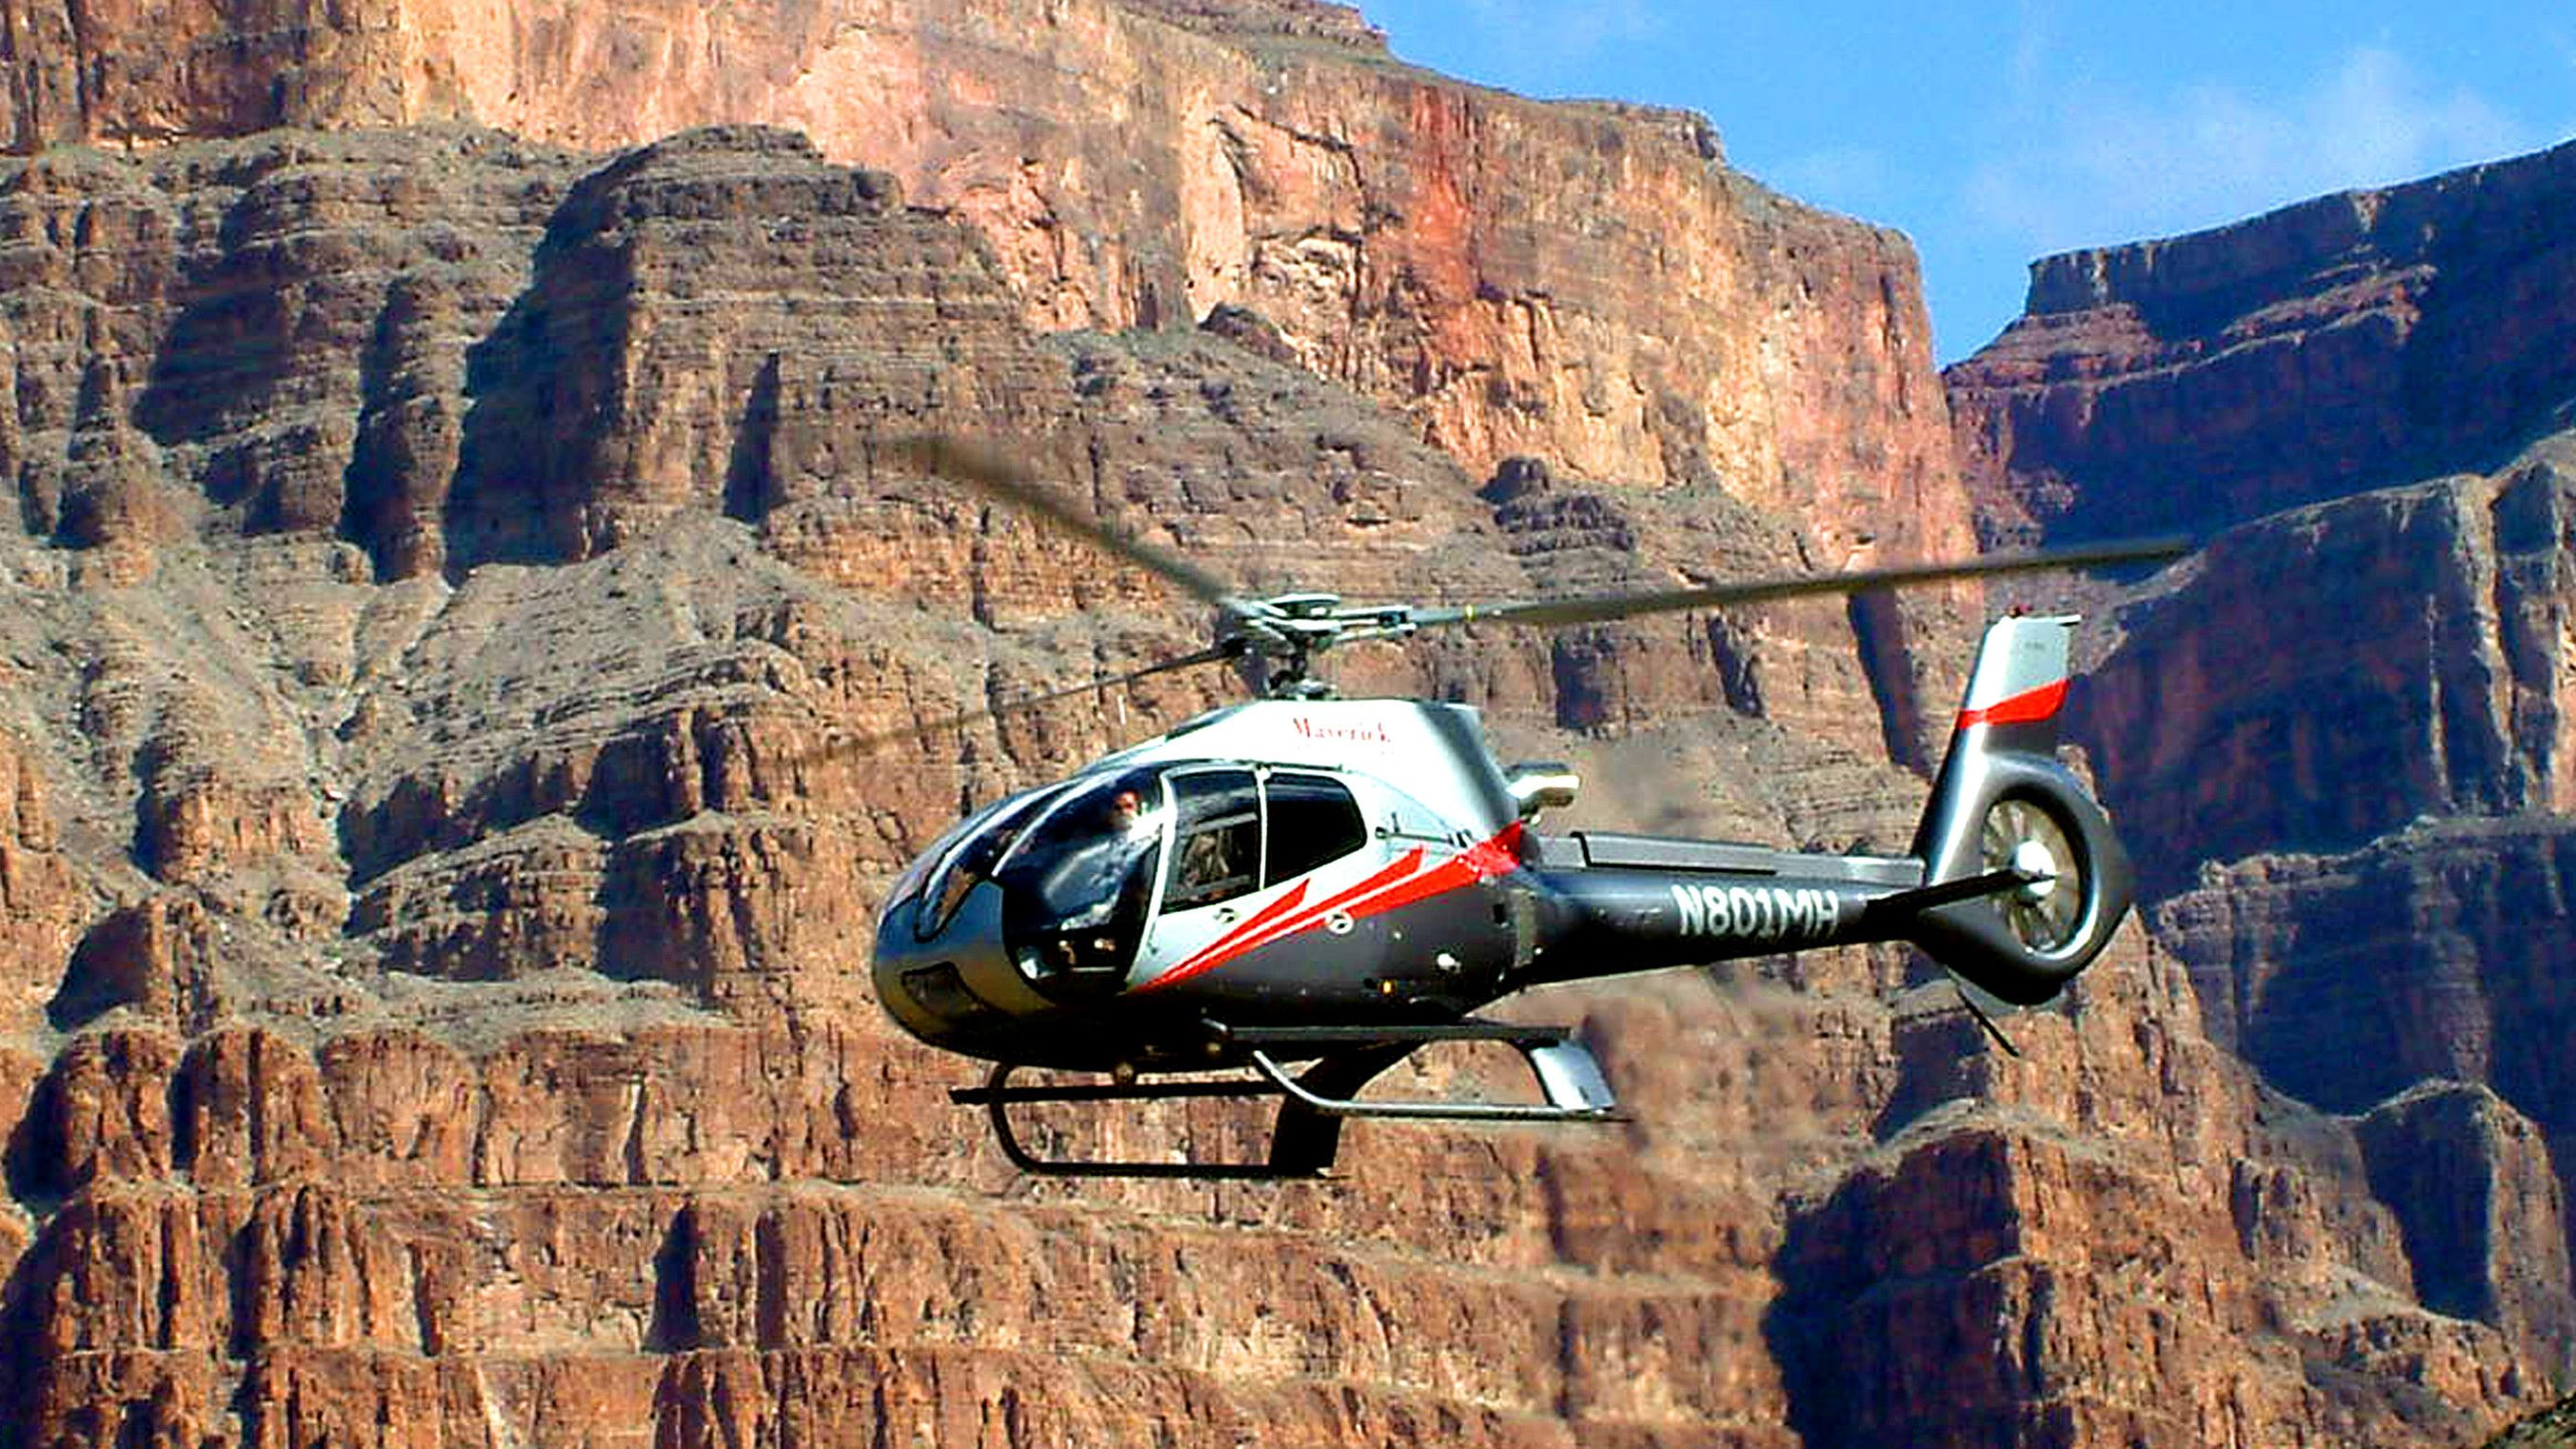 Take a helicopter ride through the Grand Canyon to multiple destinations on the tour